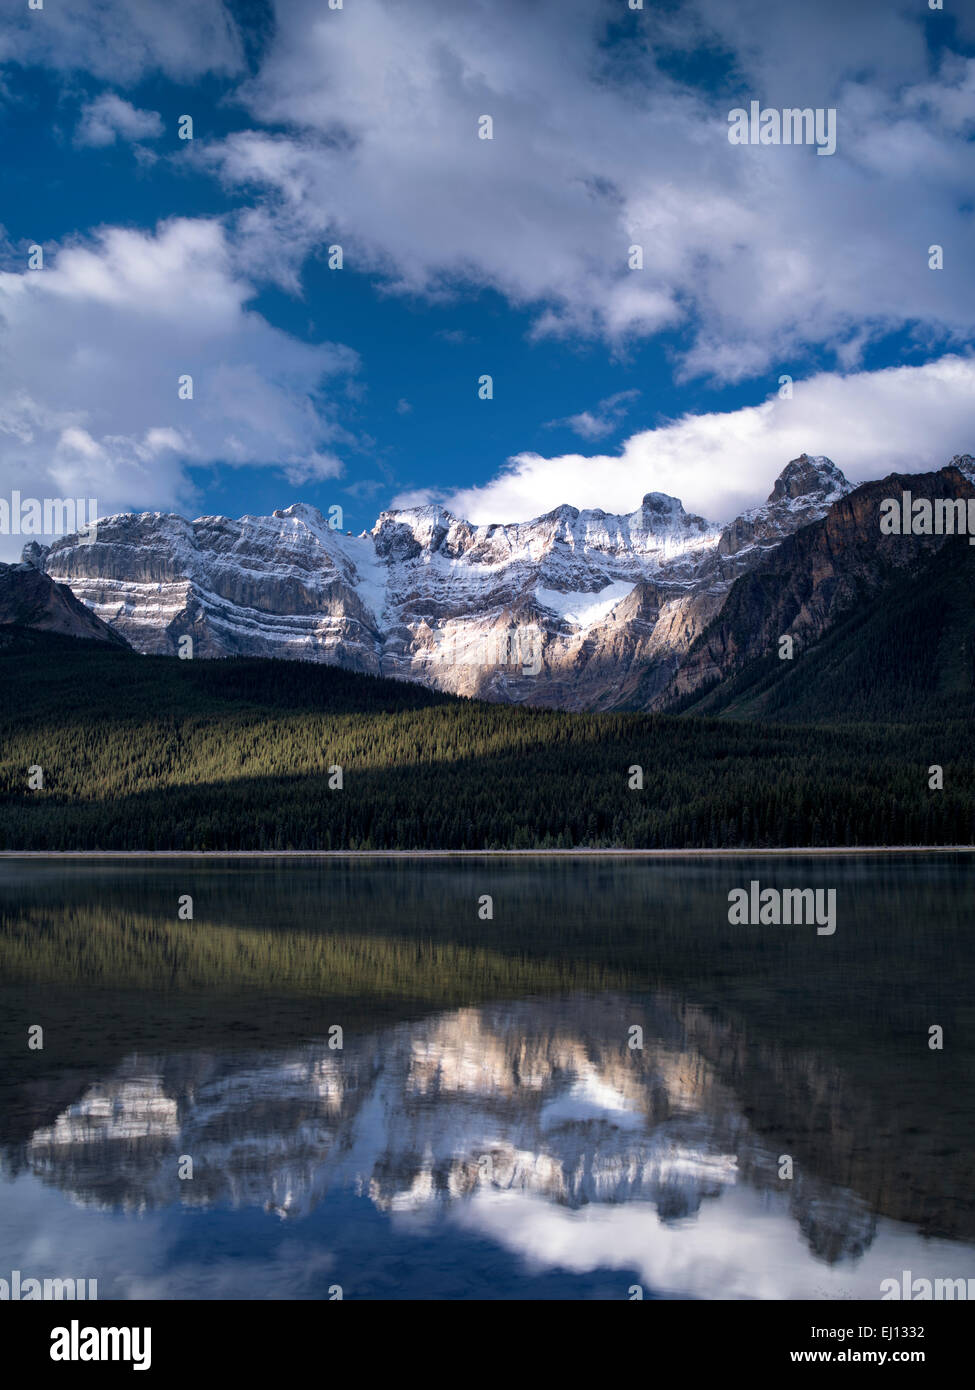 Waterfowl Lakes and mountains with reflections. Banff National Park, Alberta Canada. - Stock Image